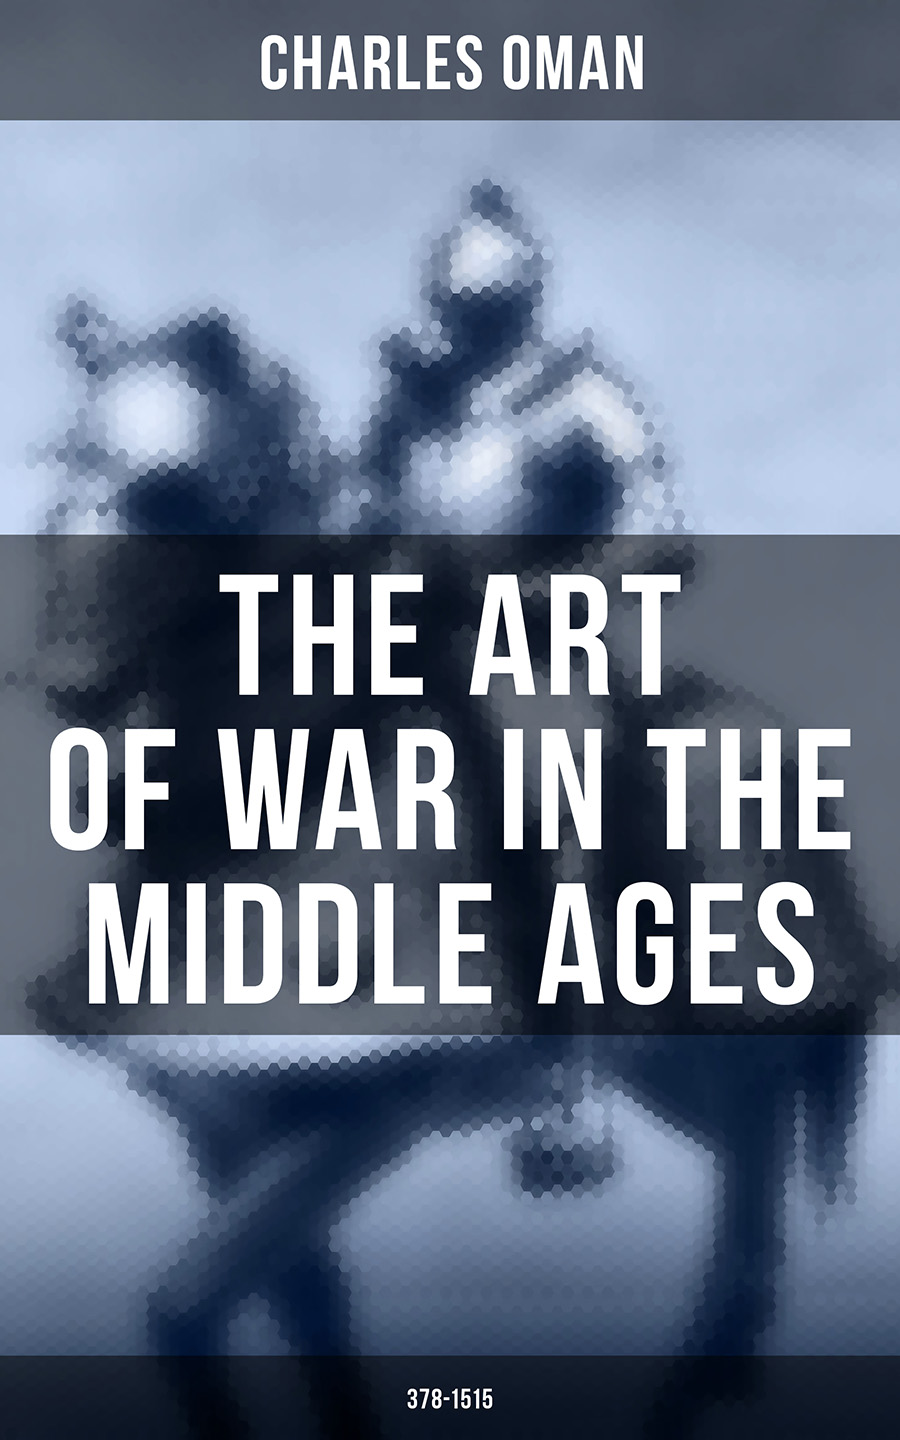 Charles Oman The Art of War in the Middle Ages (378-1515)